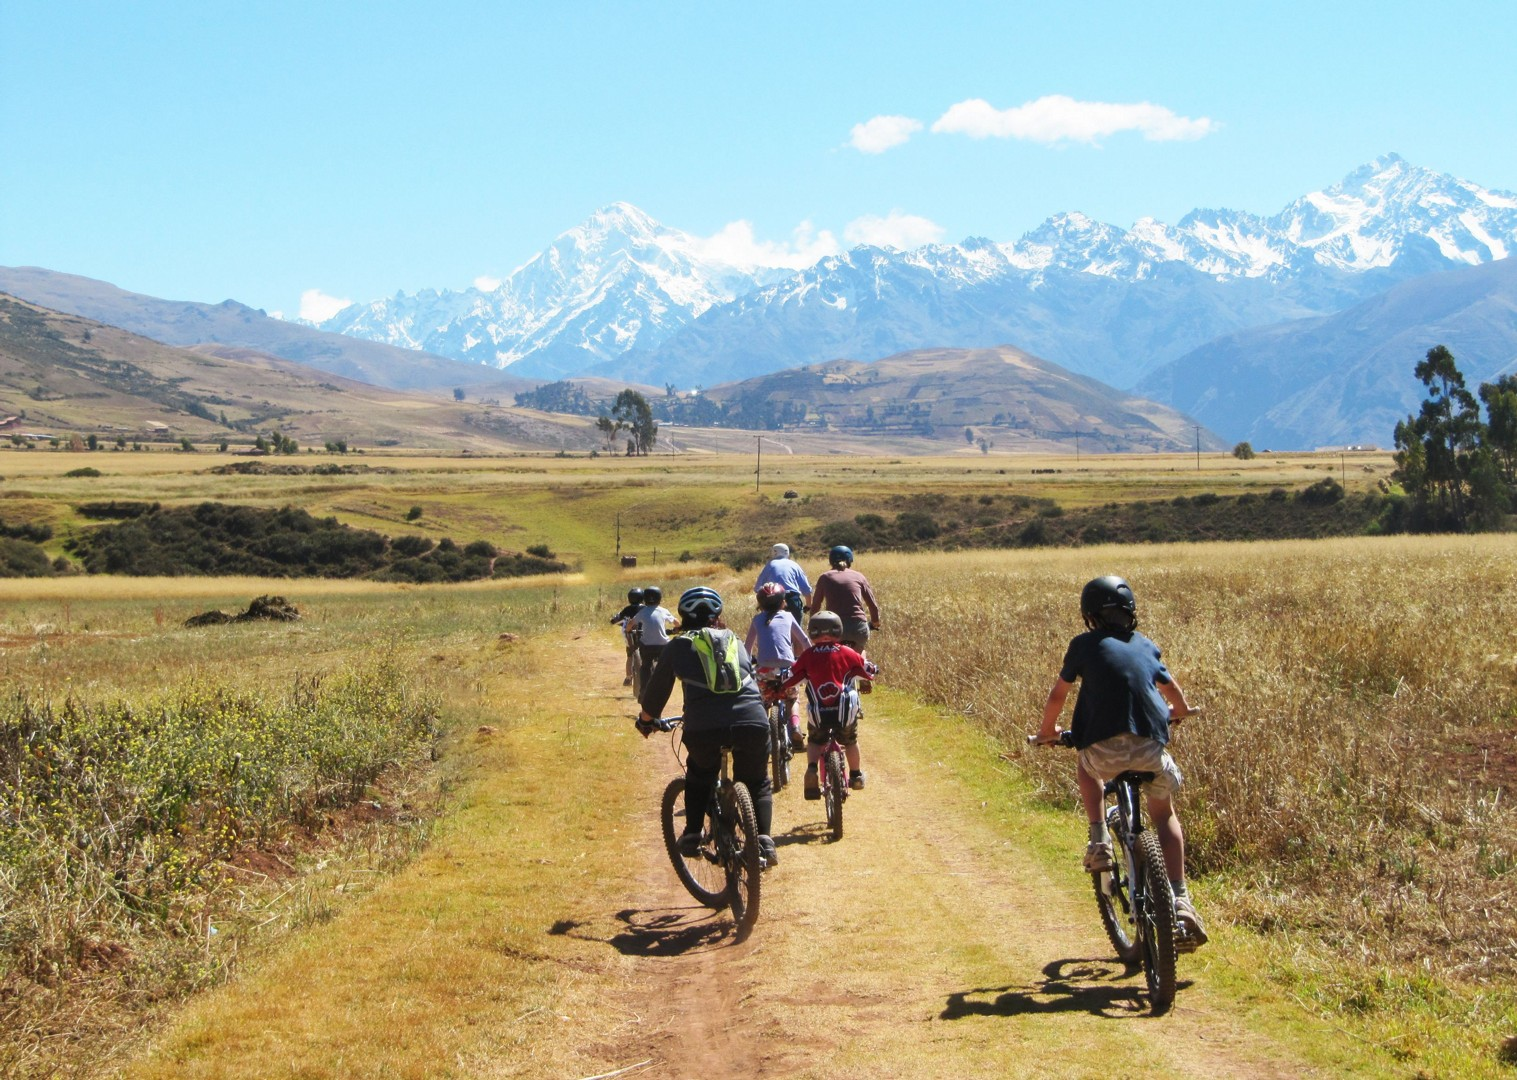 yawamaki-andean-adventurer-peru-guided-family-cycling-holiday.JPG - Peru - Andean Adventure - Guided Family Cycling Holiday - Family Cycling